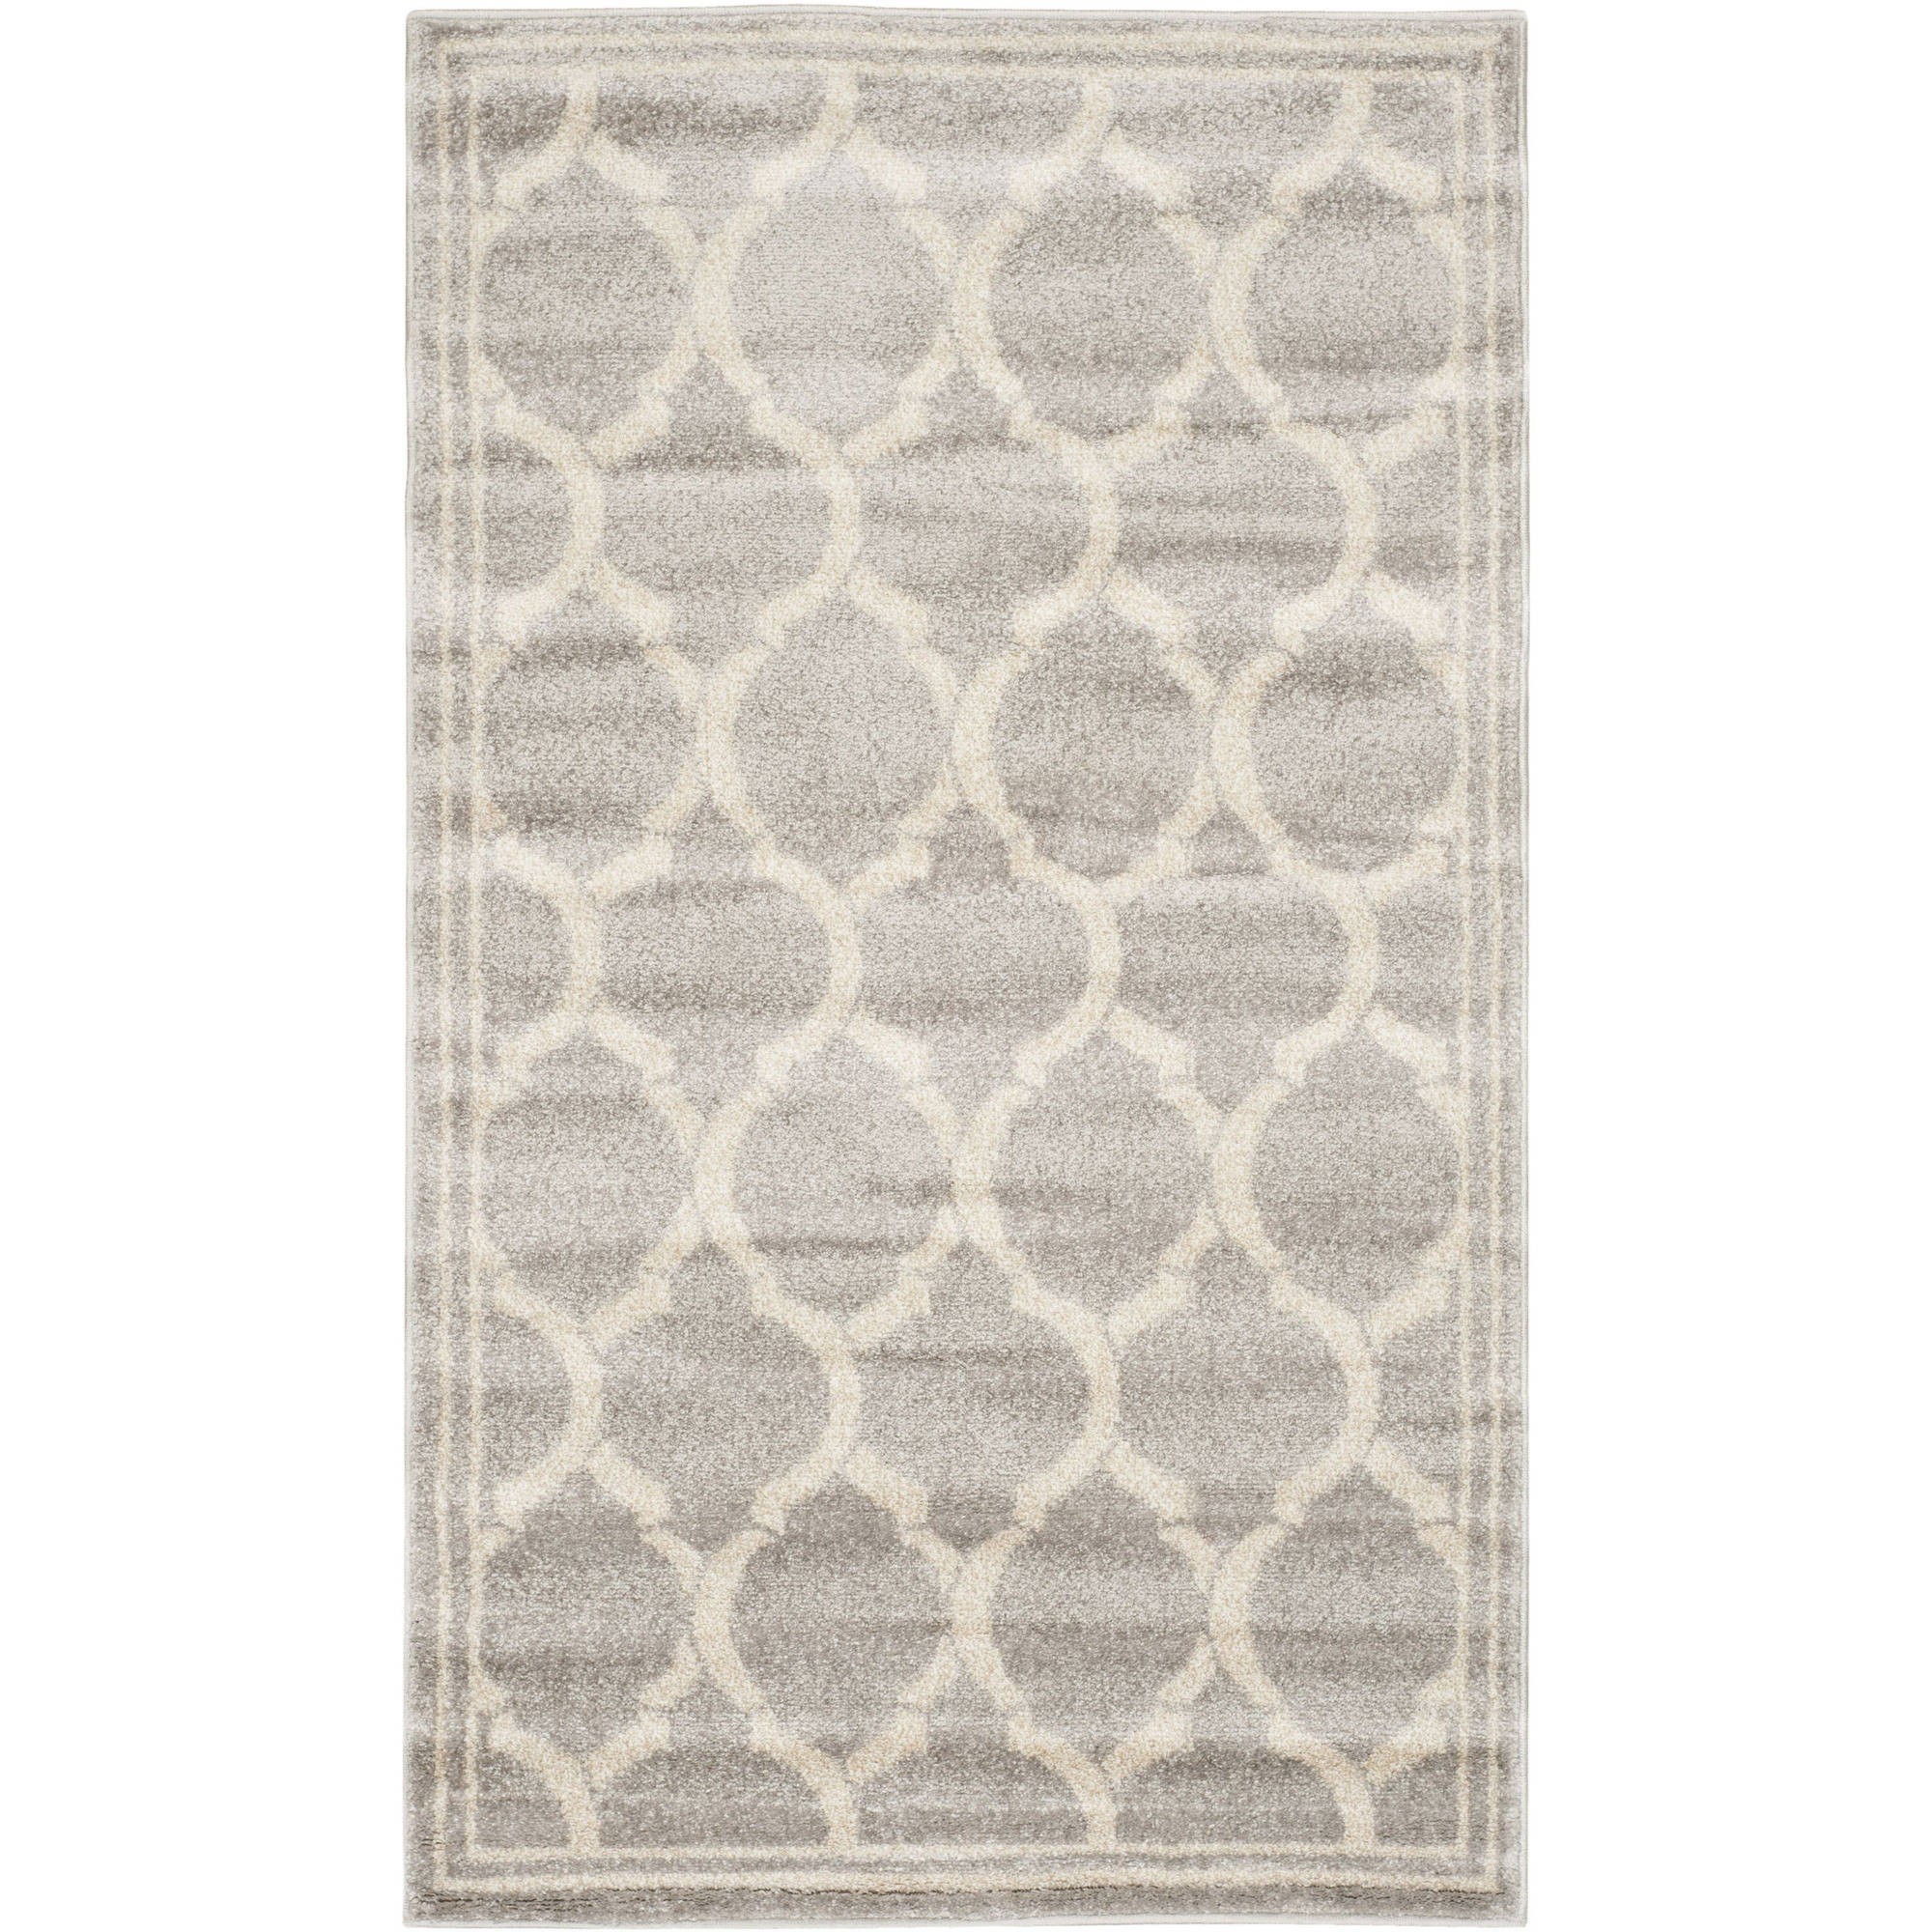 Safavieh Amherst Wendy Geometric Indoor/Outdoor Area Rug or Runner